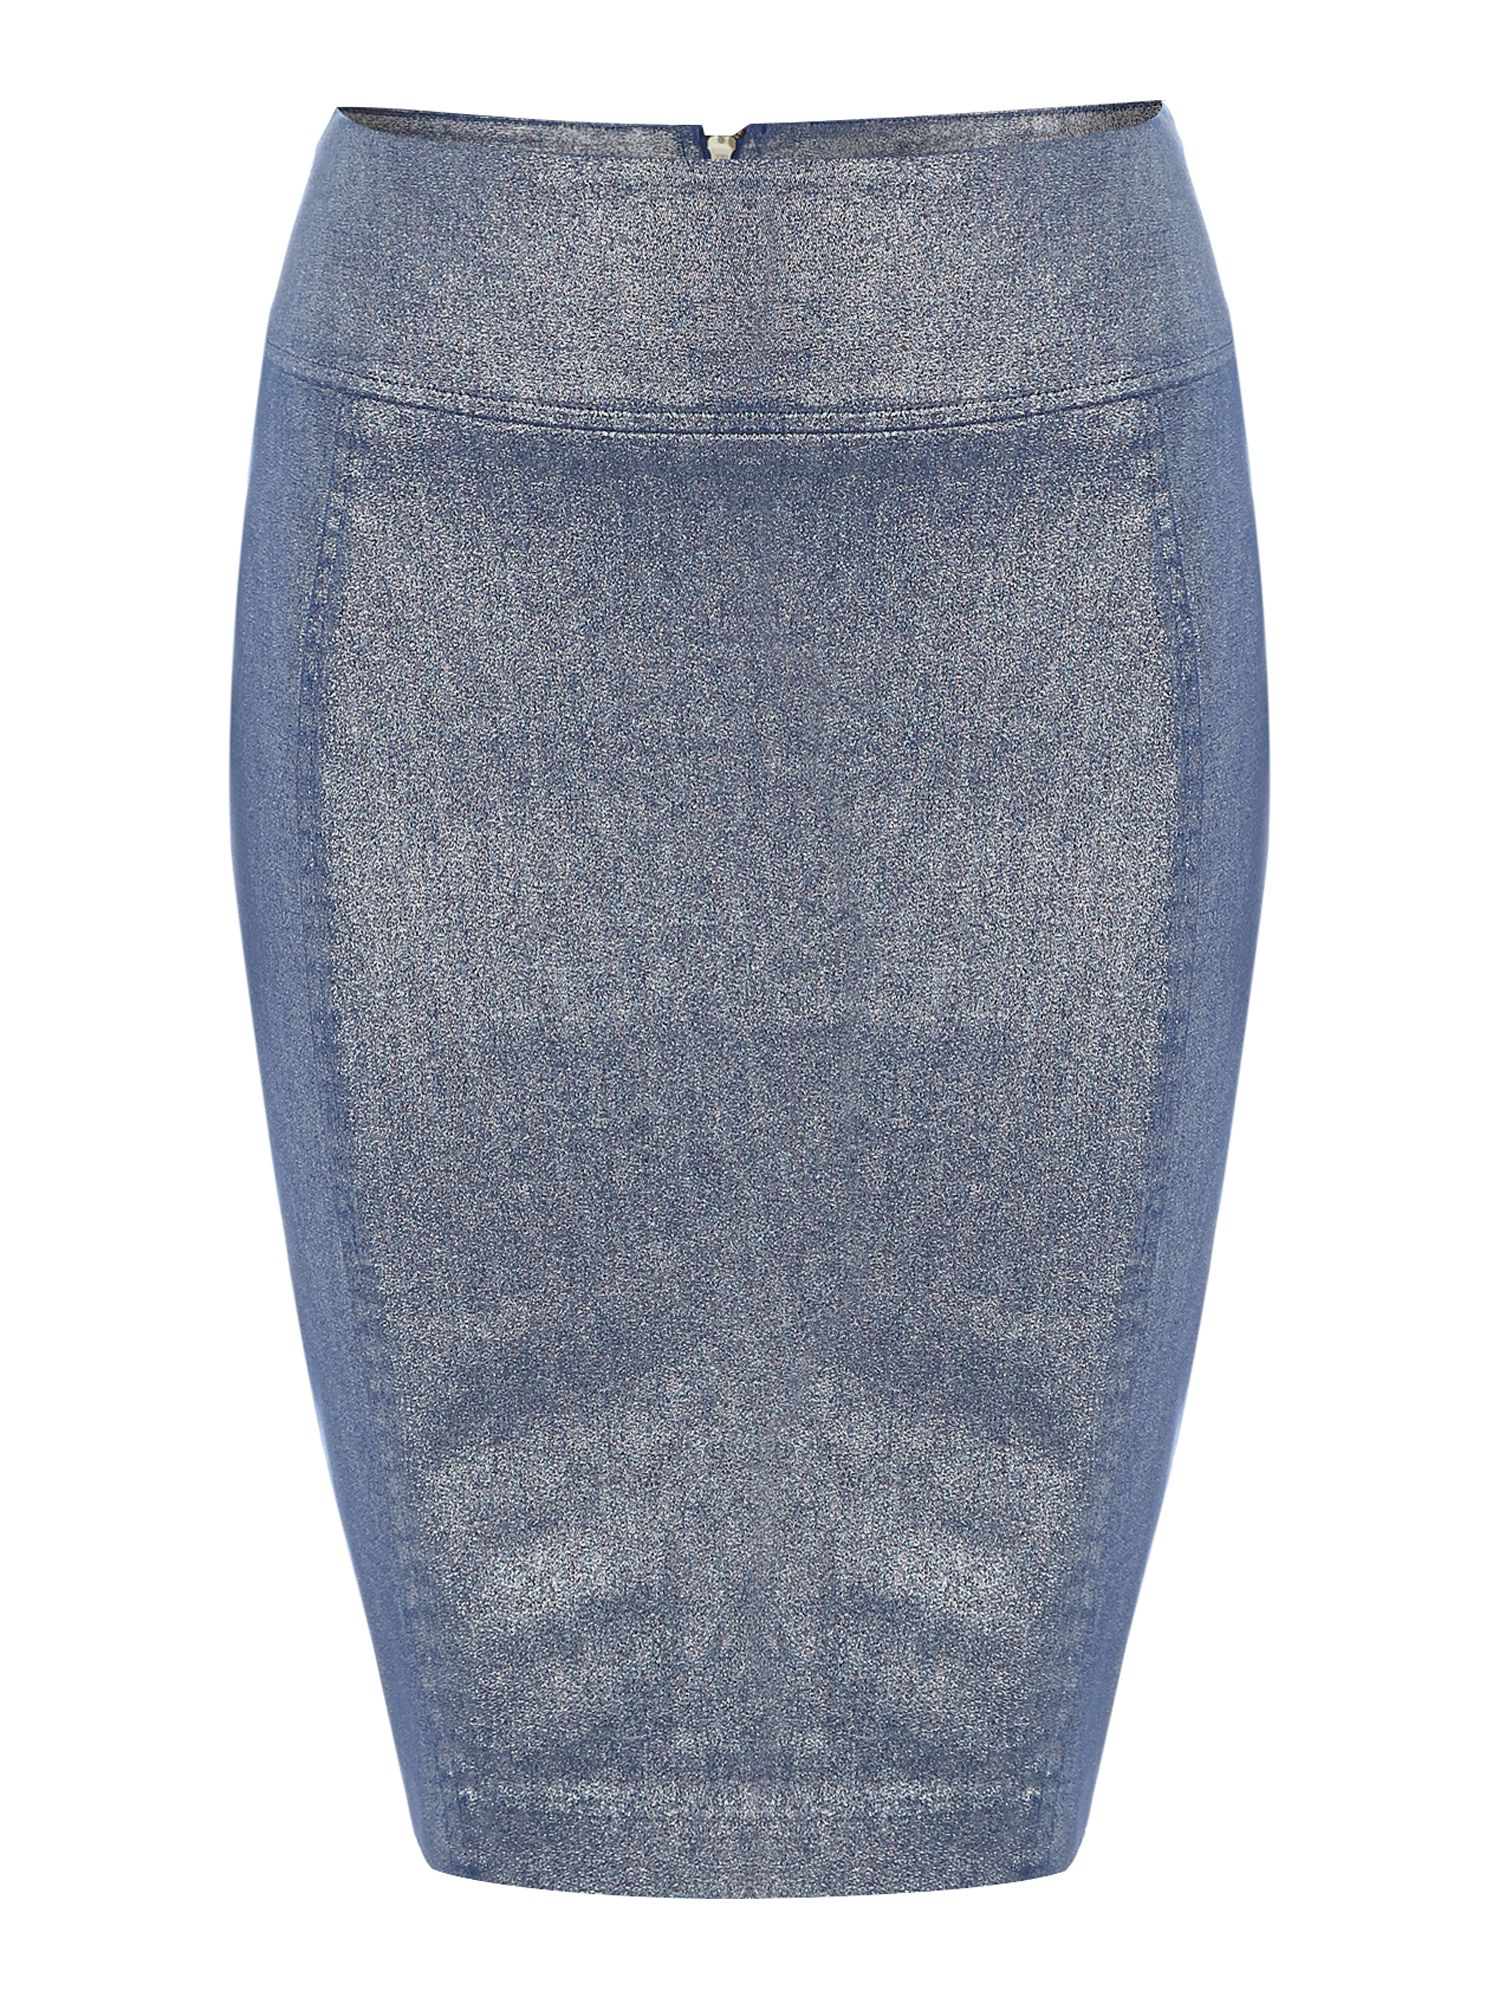 biba blue coated denim pencil skirt with zip up back